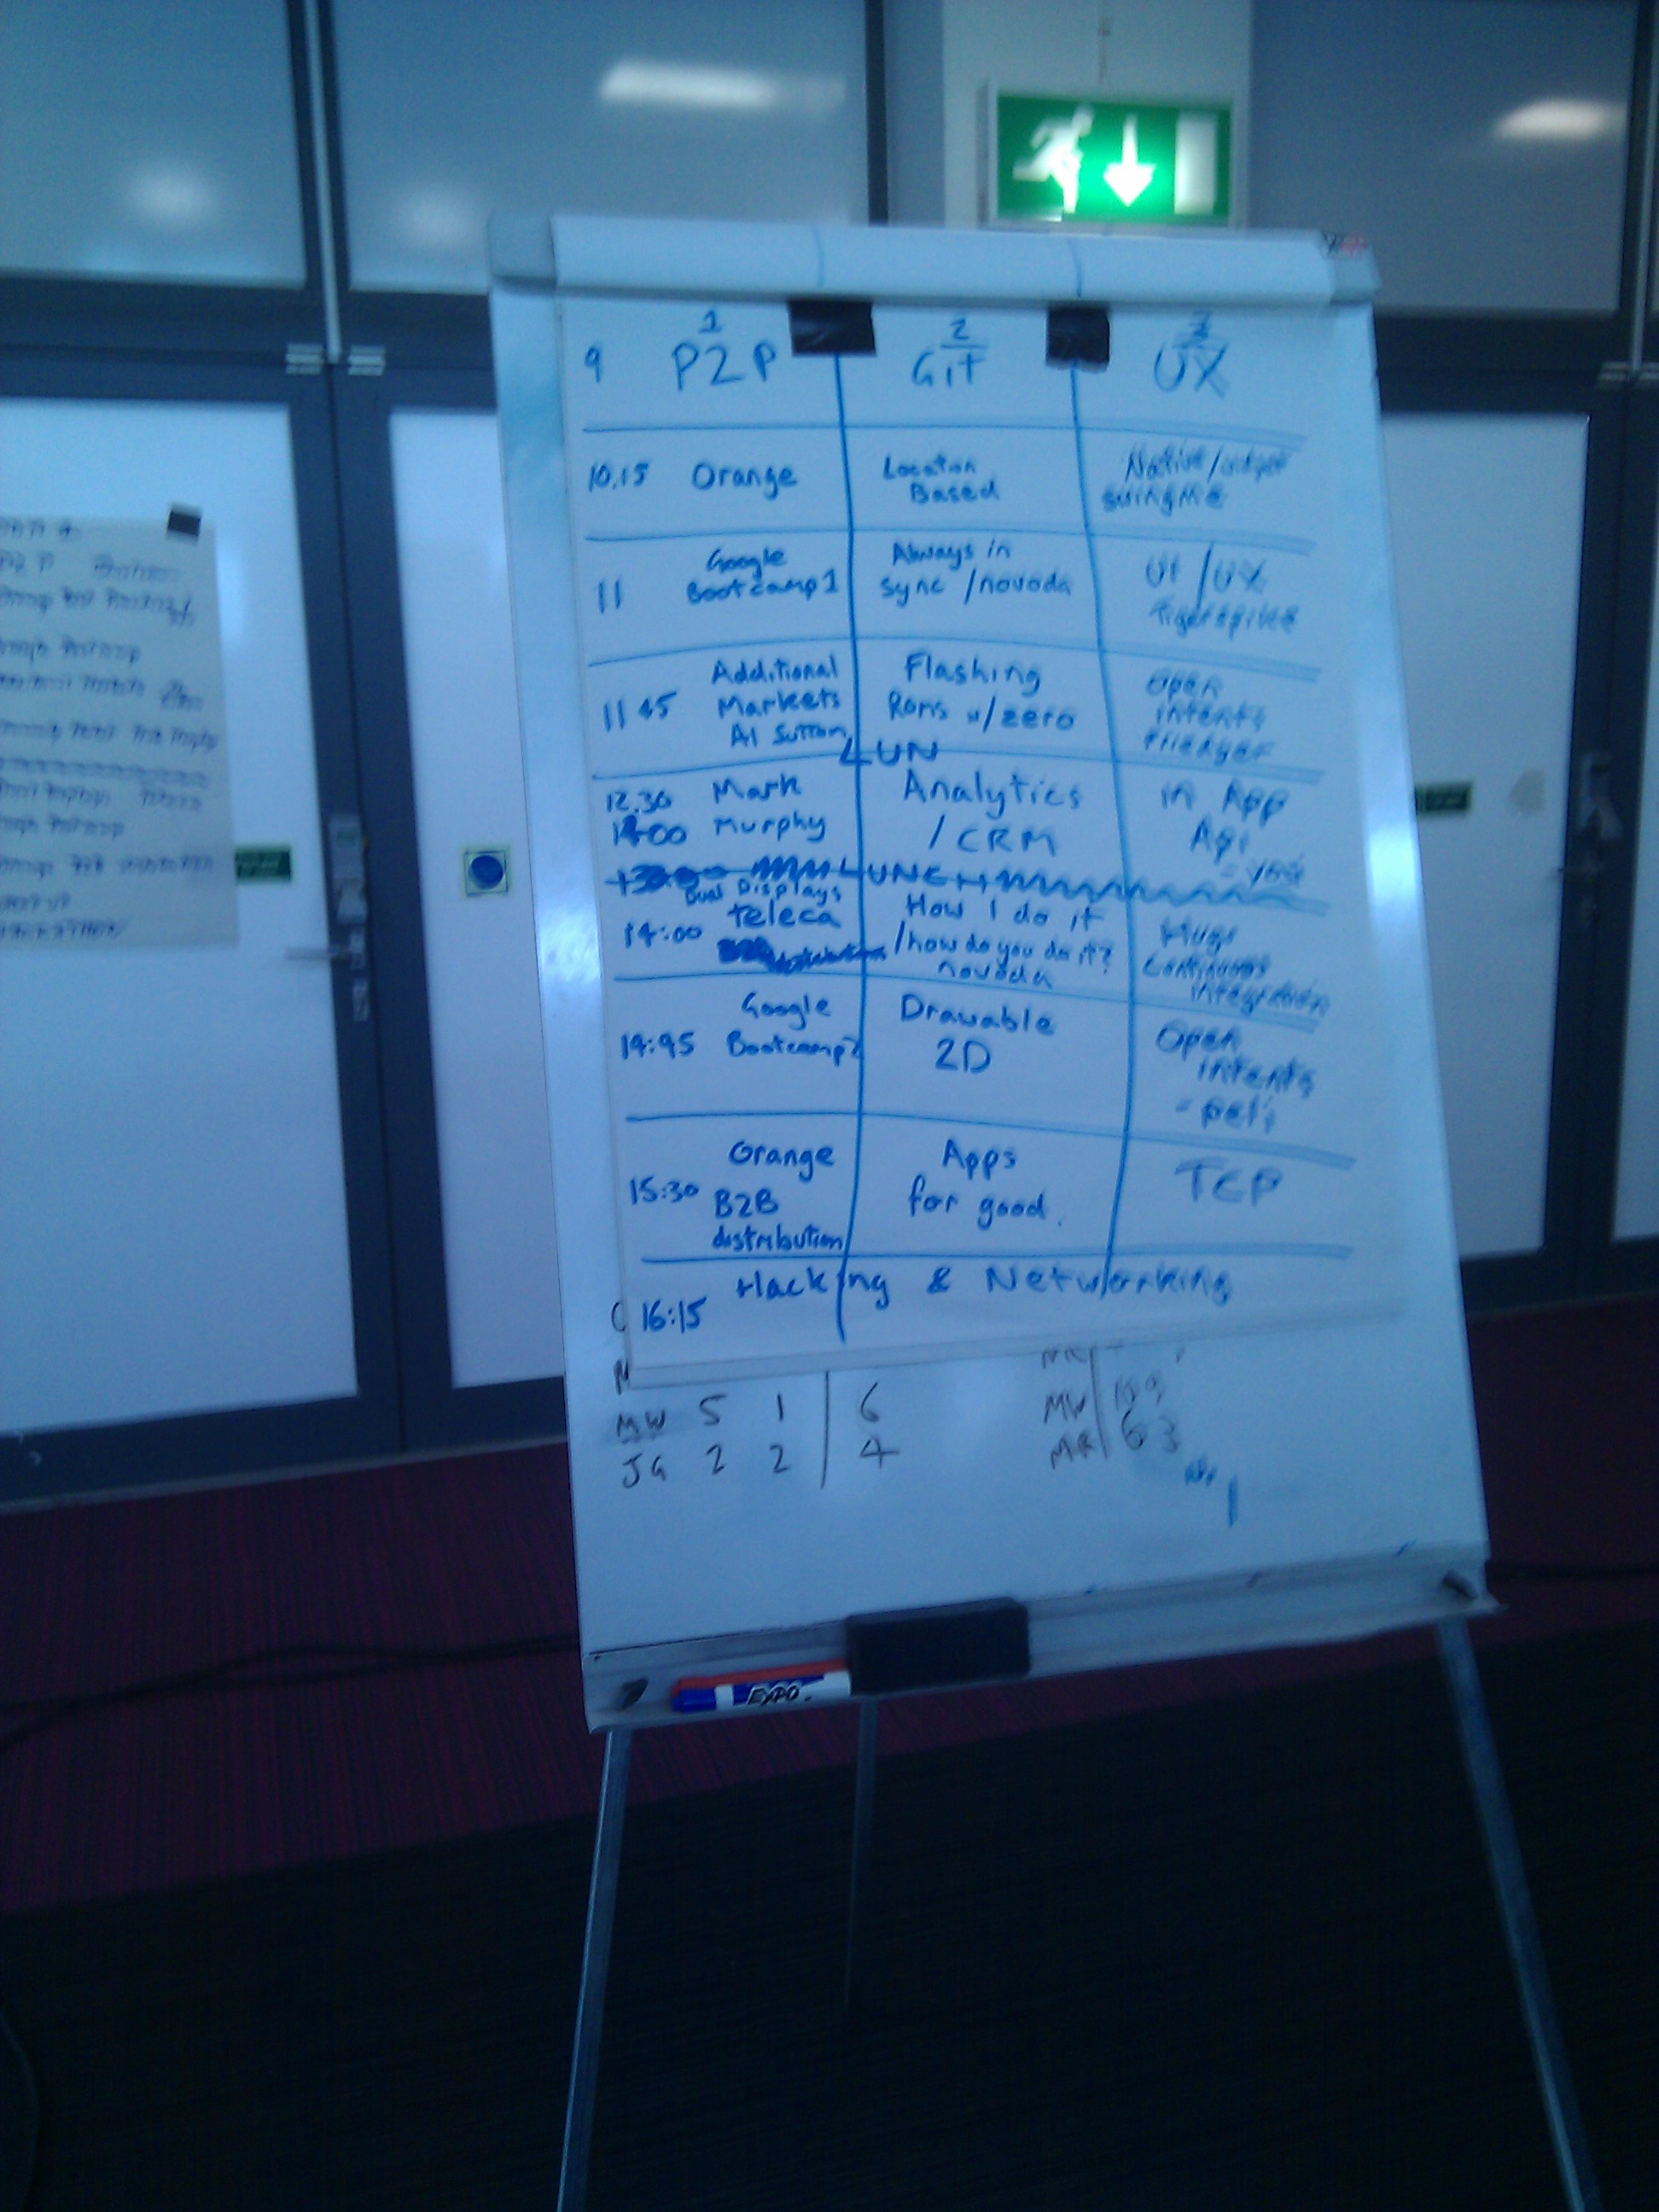 Barcamp schedule (sorry for crap pic)